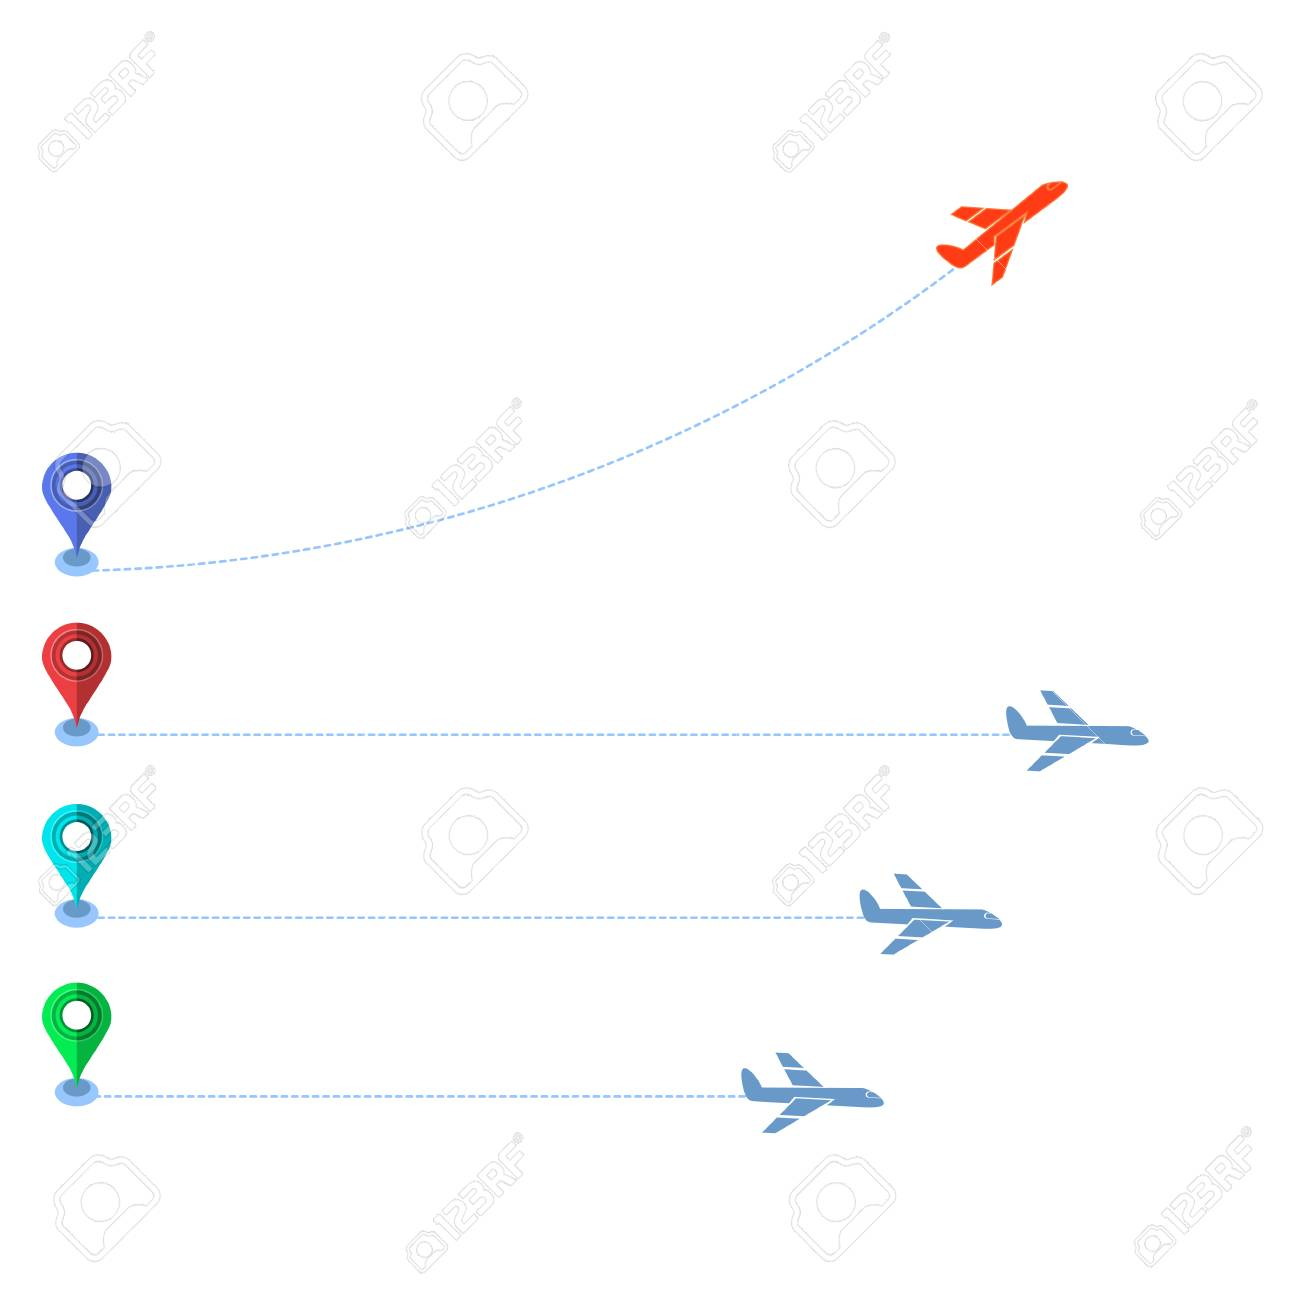 Track of Planes and Colored Markers Isolated on White Background